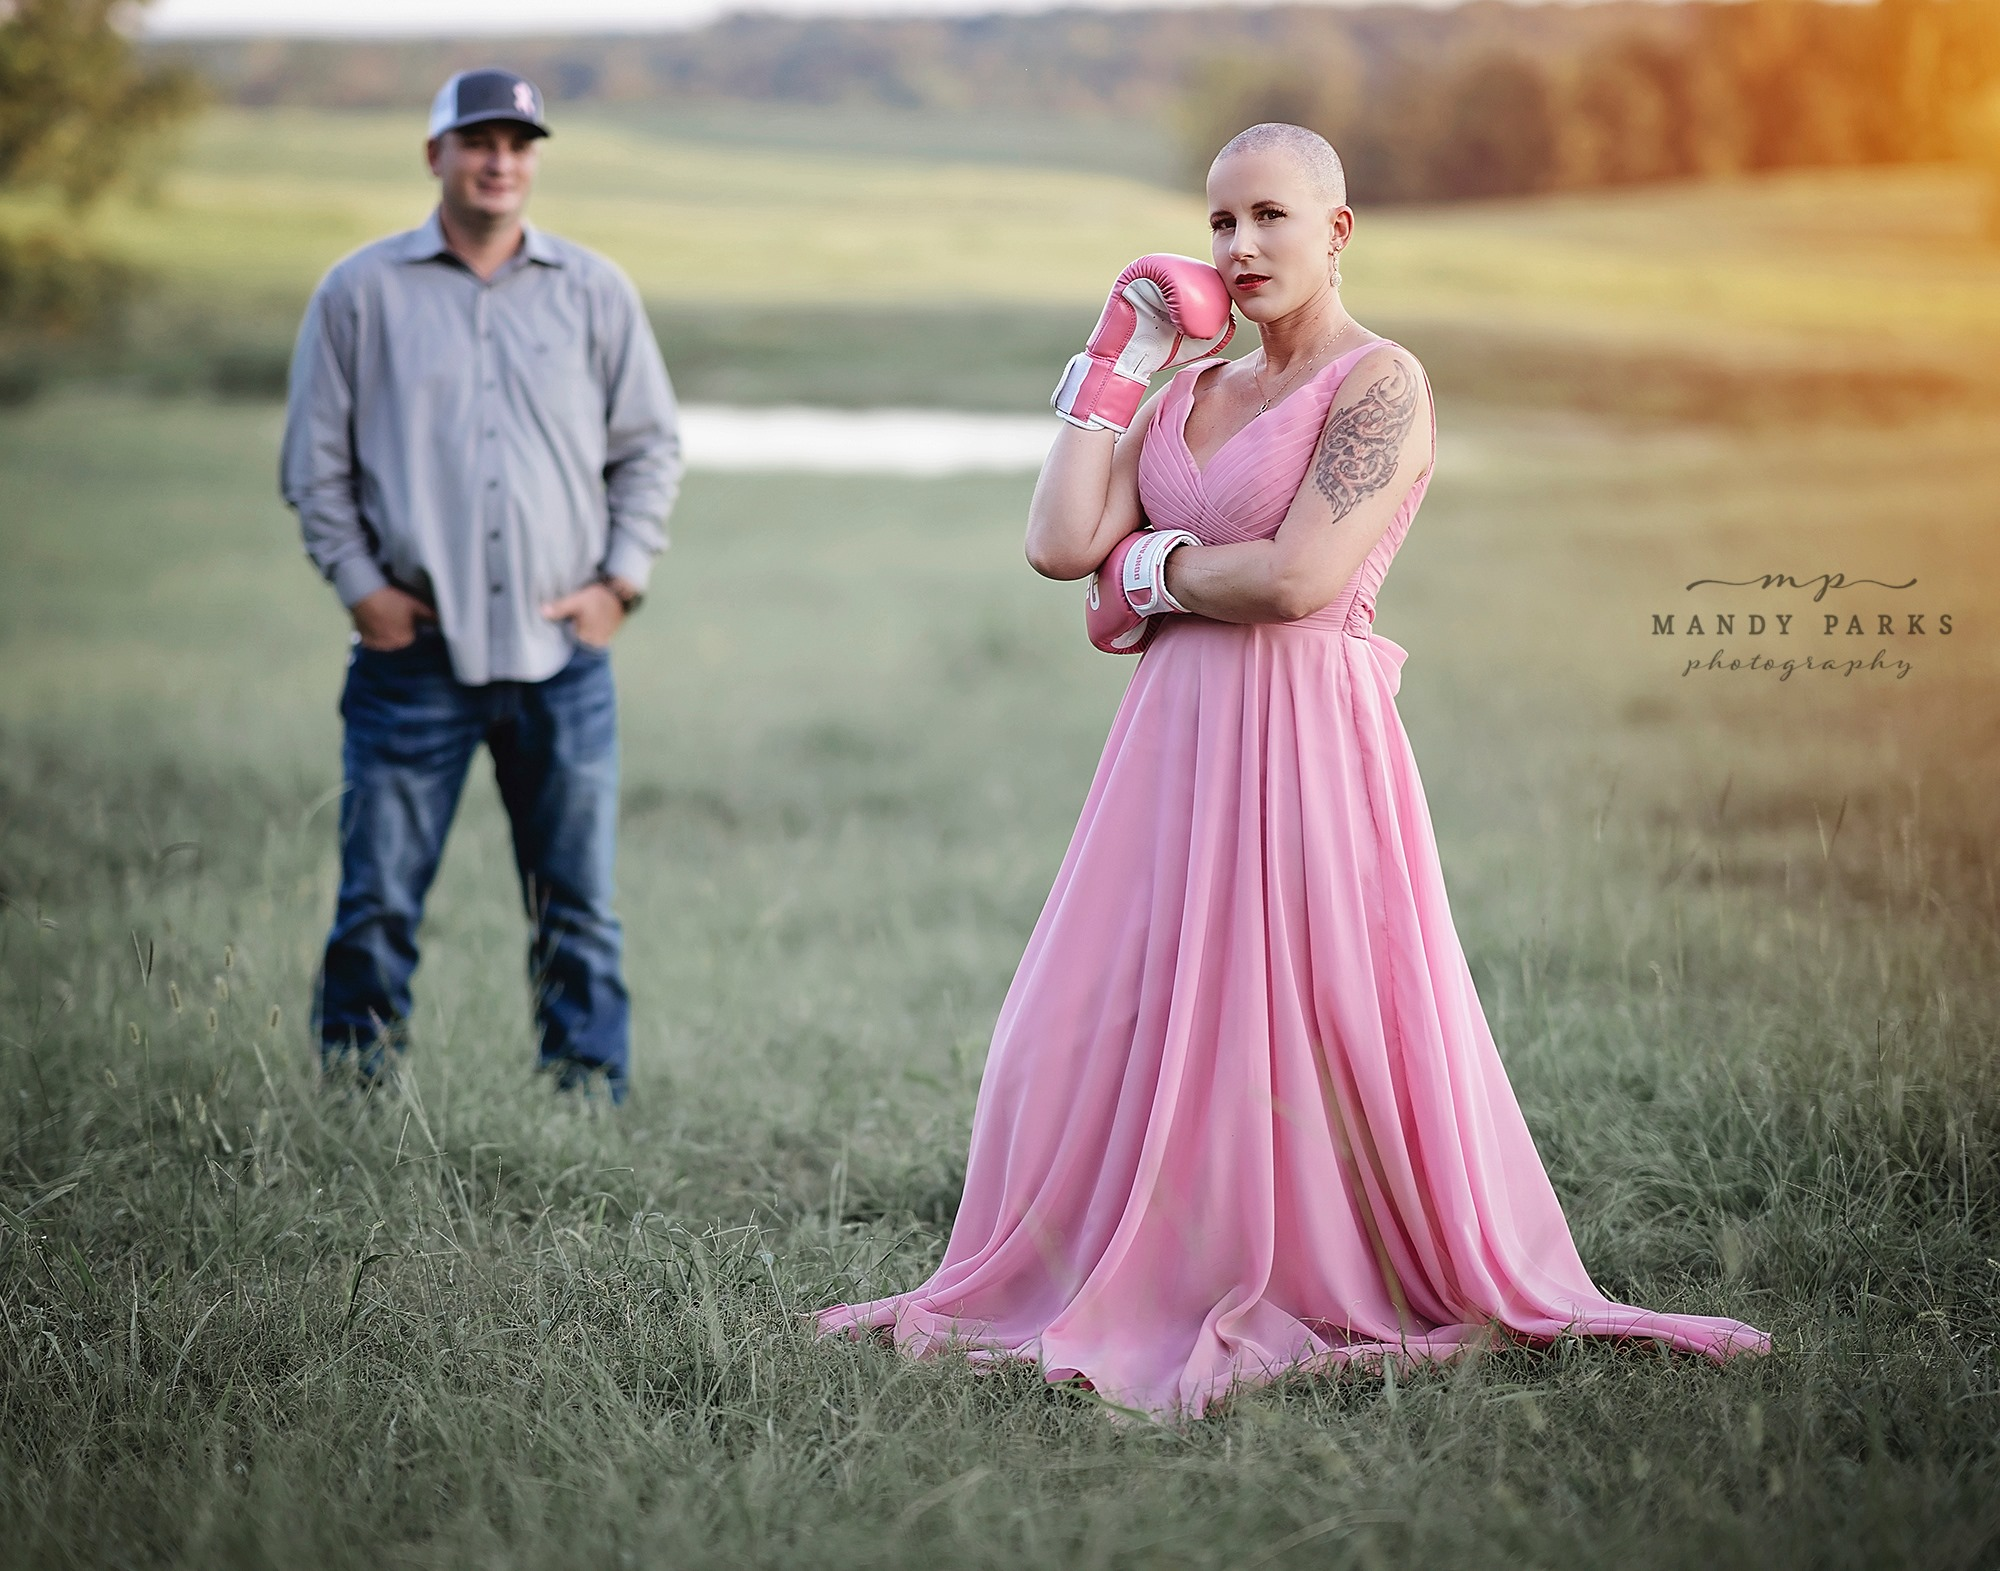 Husband Shaves His Wife's Hair As She Prepares To Fight Breast Cancer In Raw Photoshoot